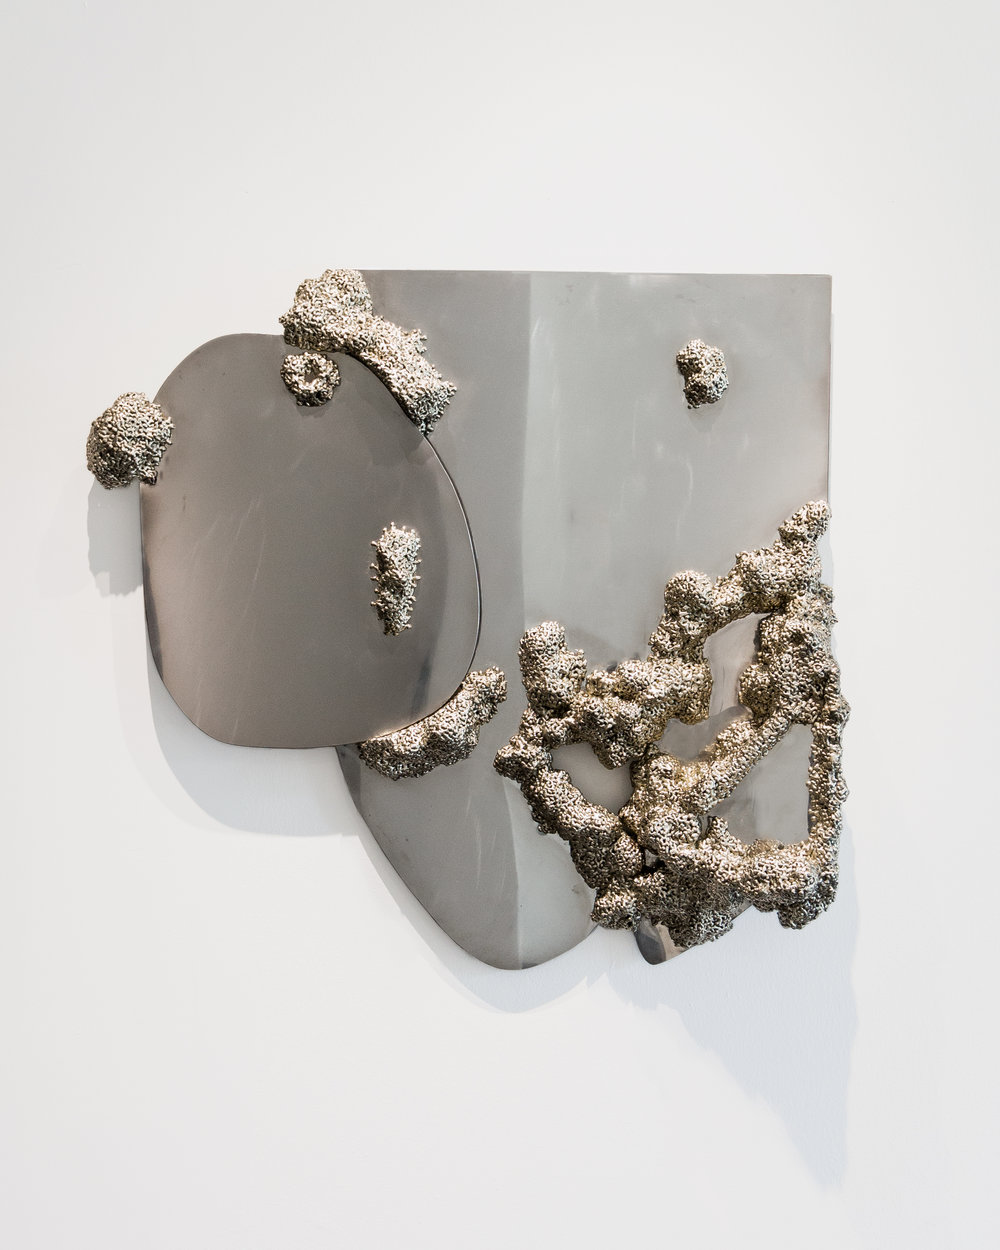 Jack Craig  -  Silvered Steel Mirror , 2018 Nickel silver and stainless steel 38h x 36w x 8d inches